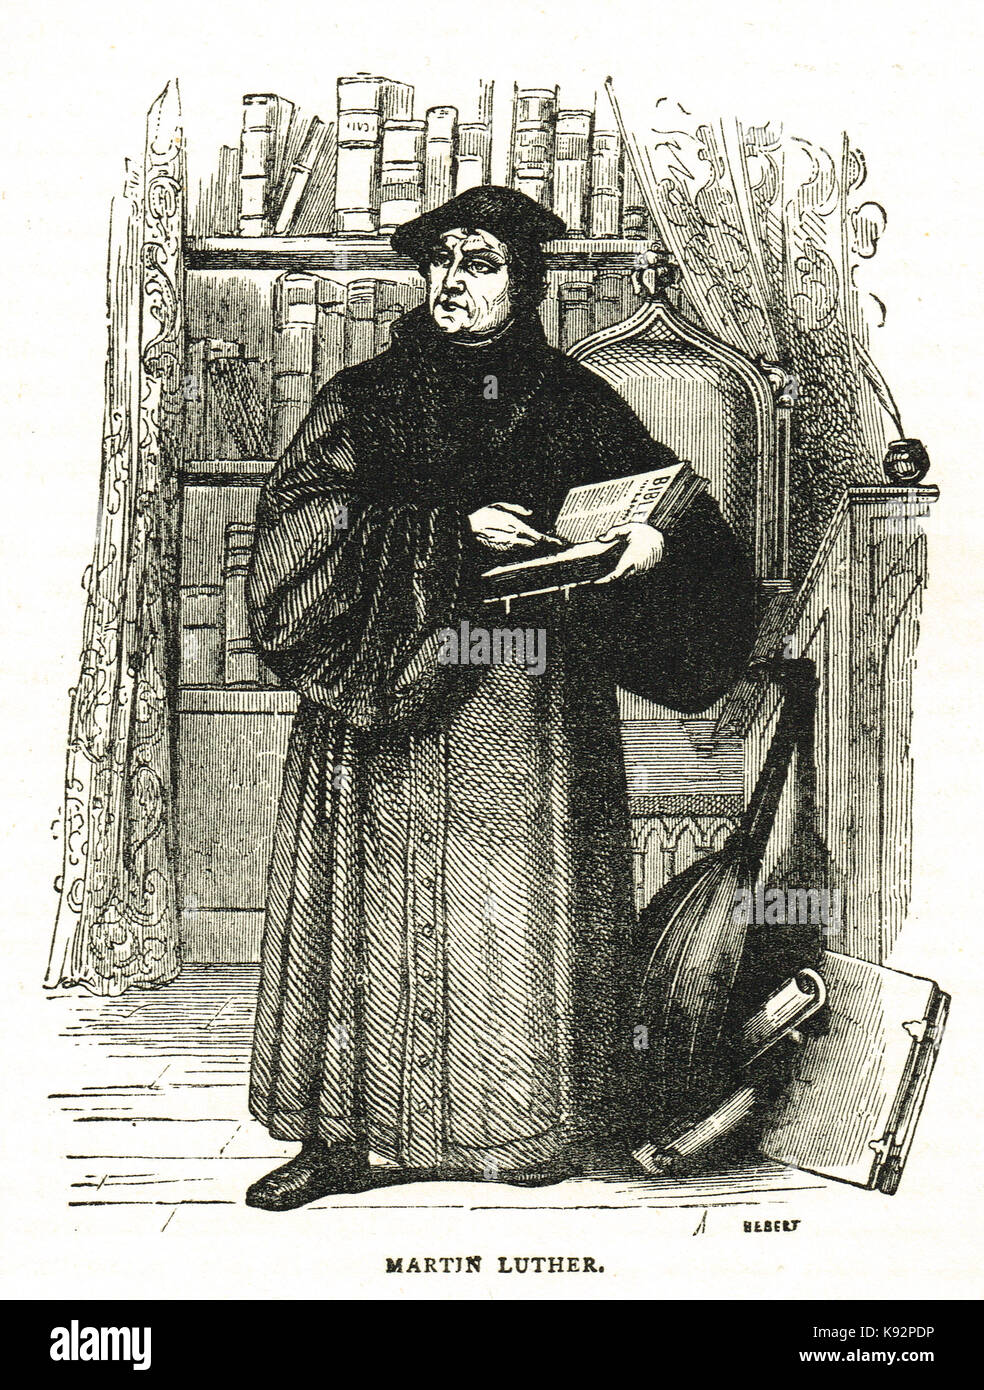 Martin Luther protestant reformer (1483-1546) - Stock Image